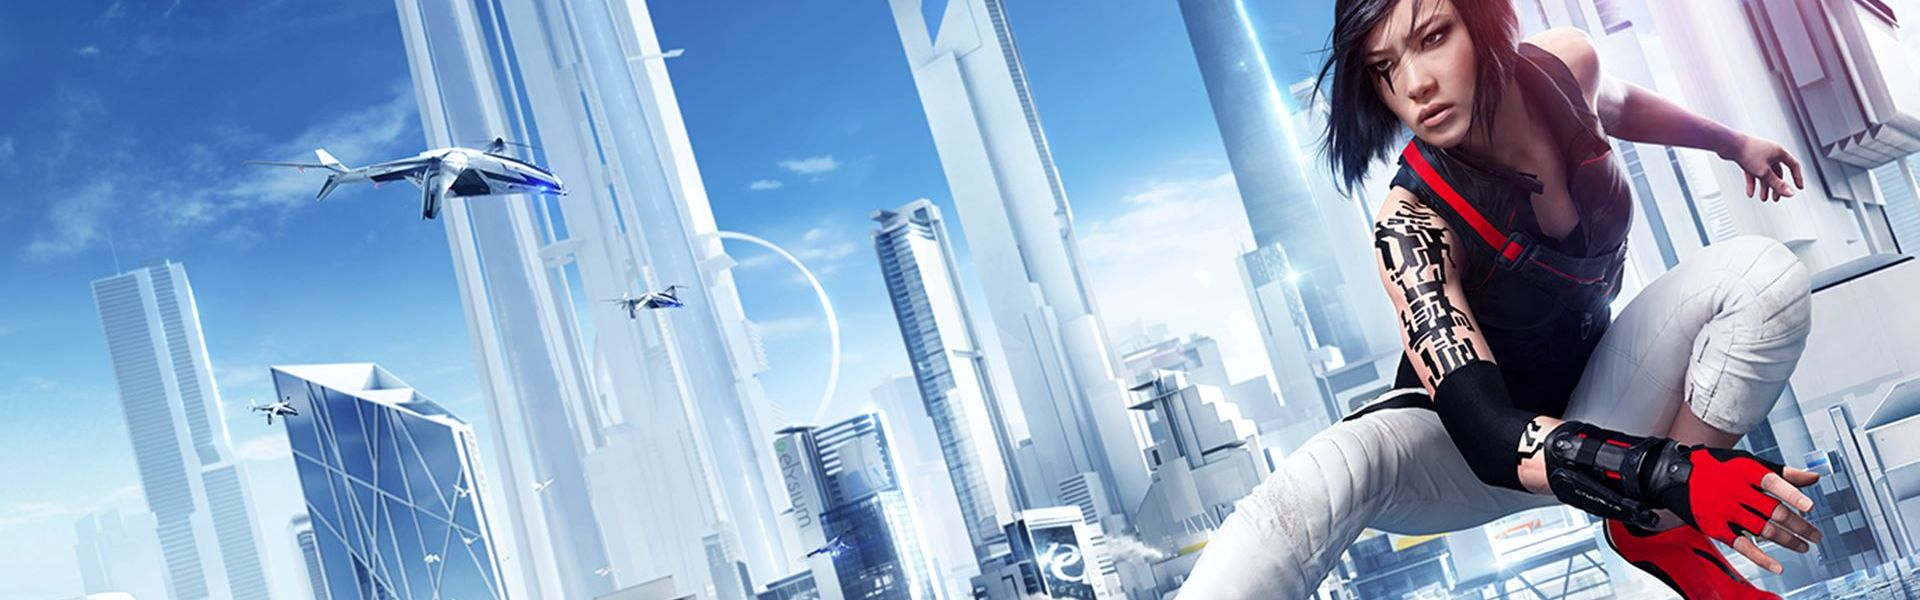 Mirror's Edge Catalyst - Combat Runner Kit (DLC) Origin Key GLOBAL